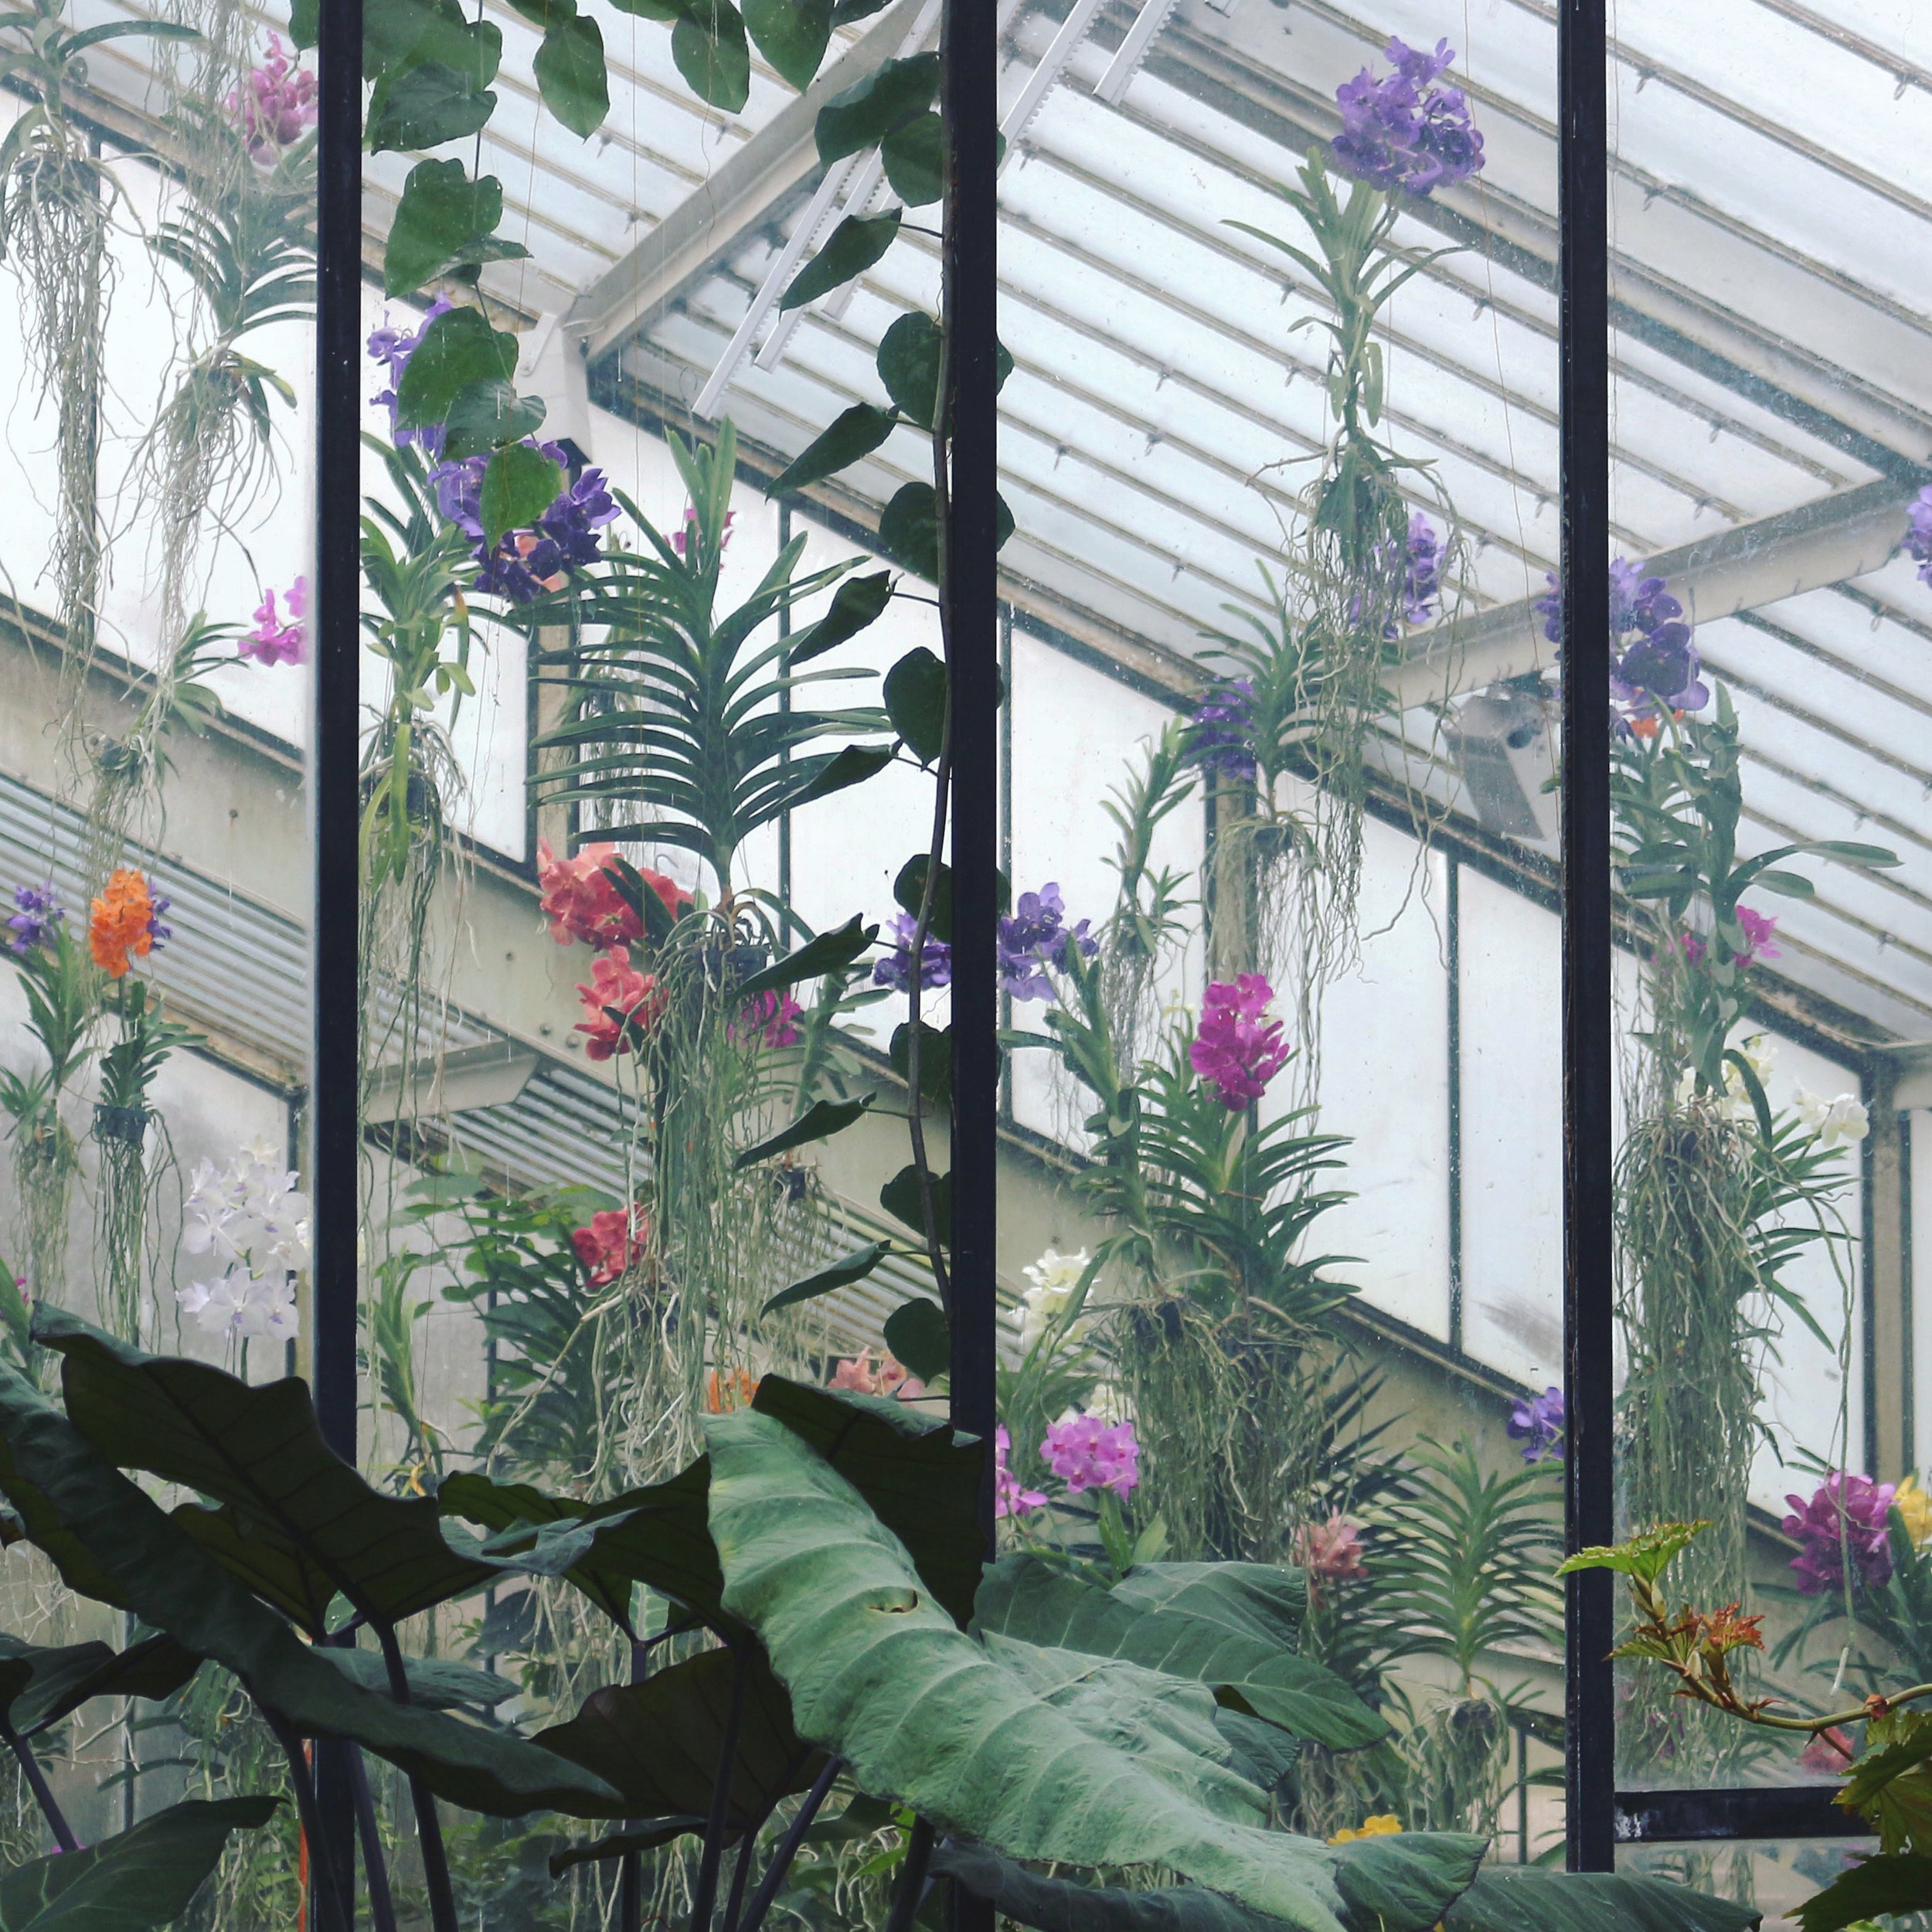 Orchid House photo by Lindsay McDonagh